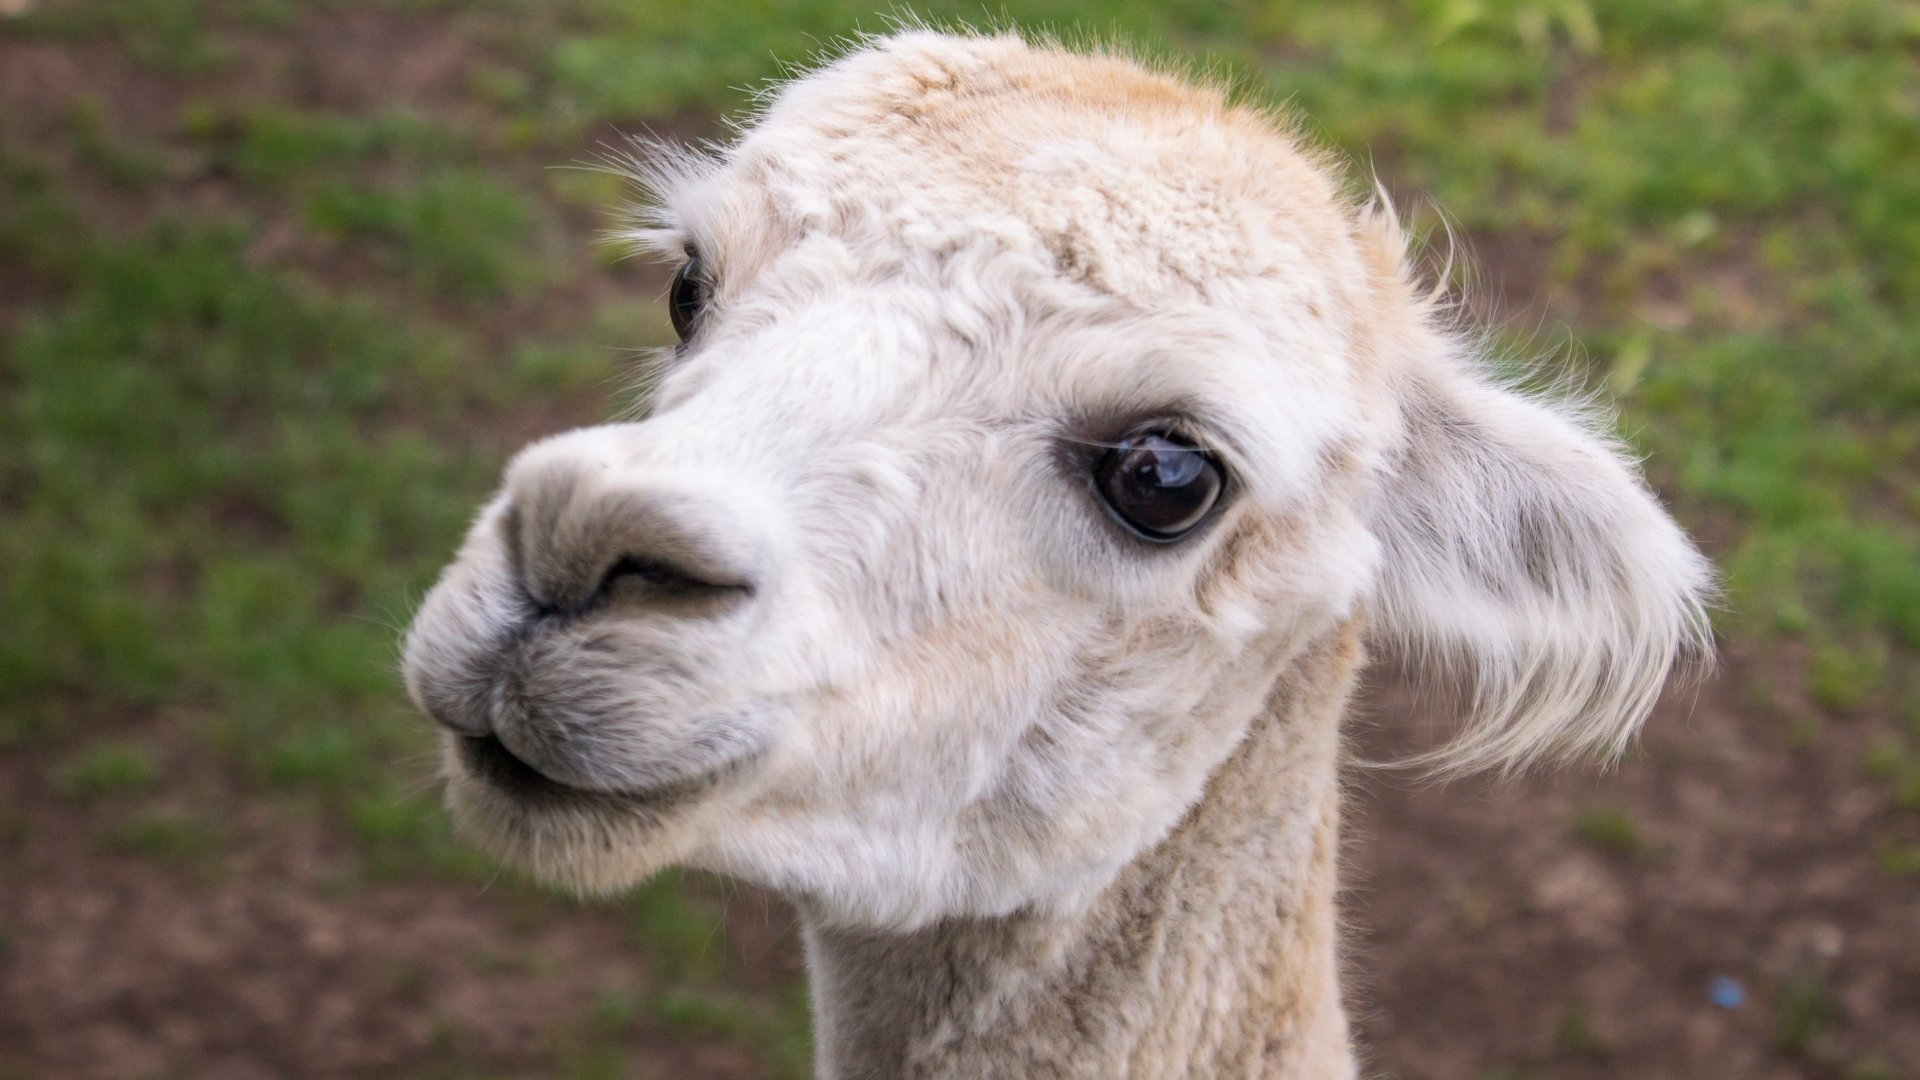 Best Alpaca wallpaper ID:127006 for High Resolution hd 1920x1080 computer